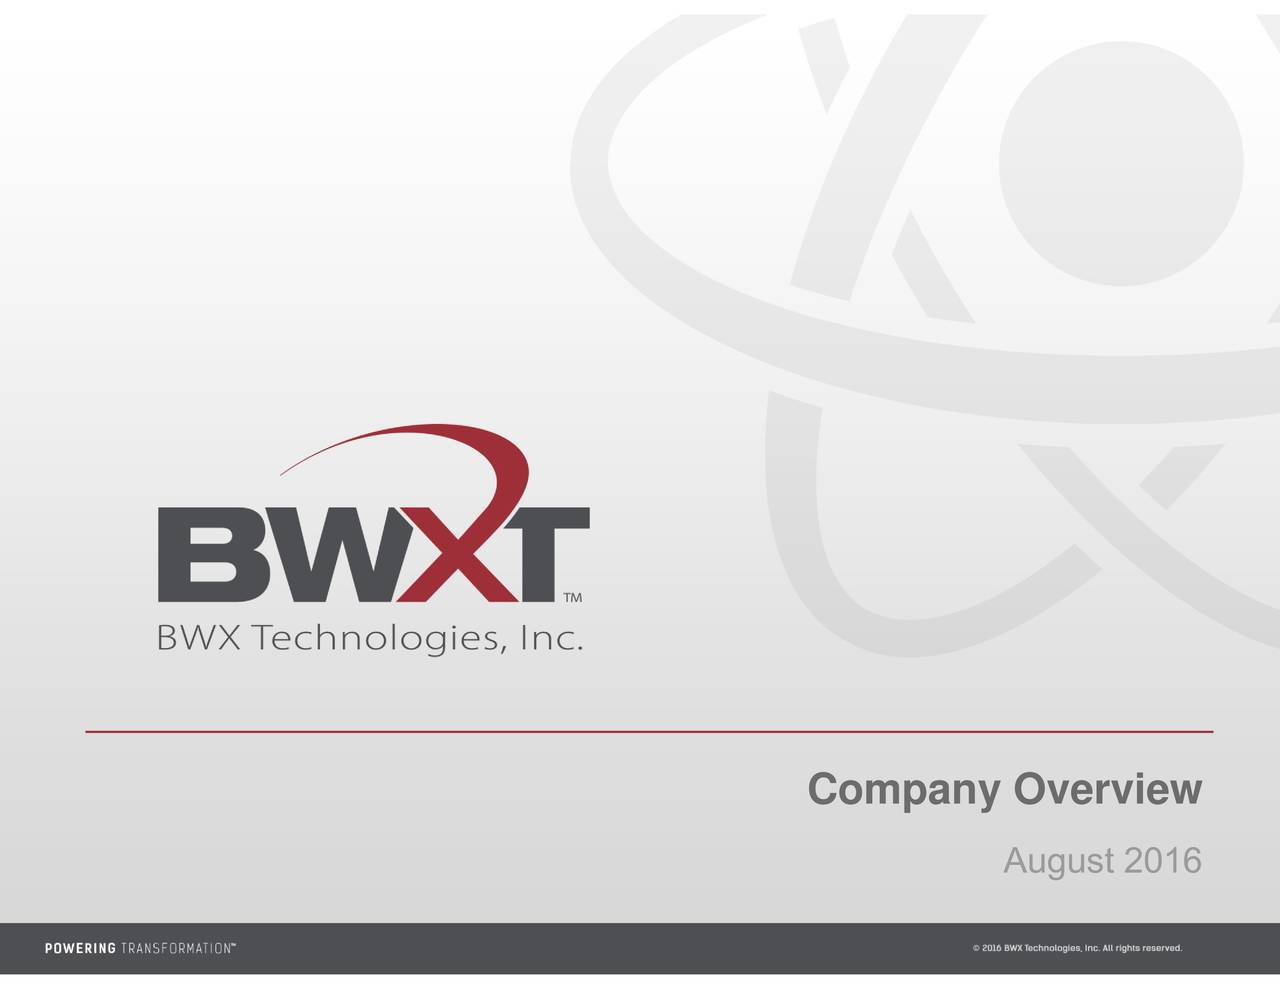 August 2016 Company Overview